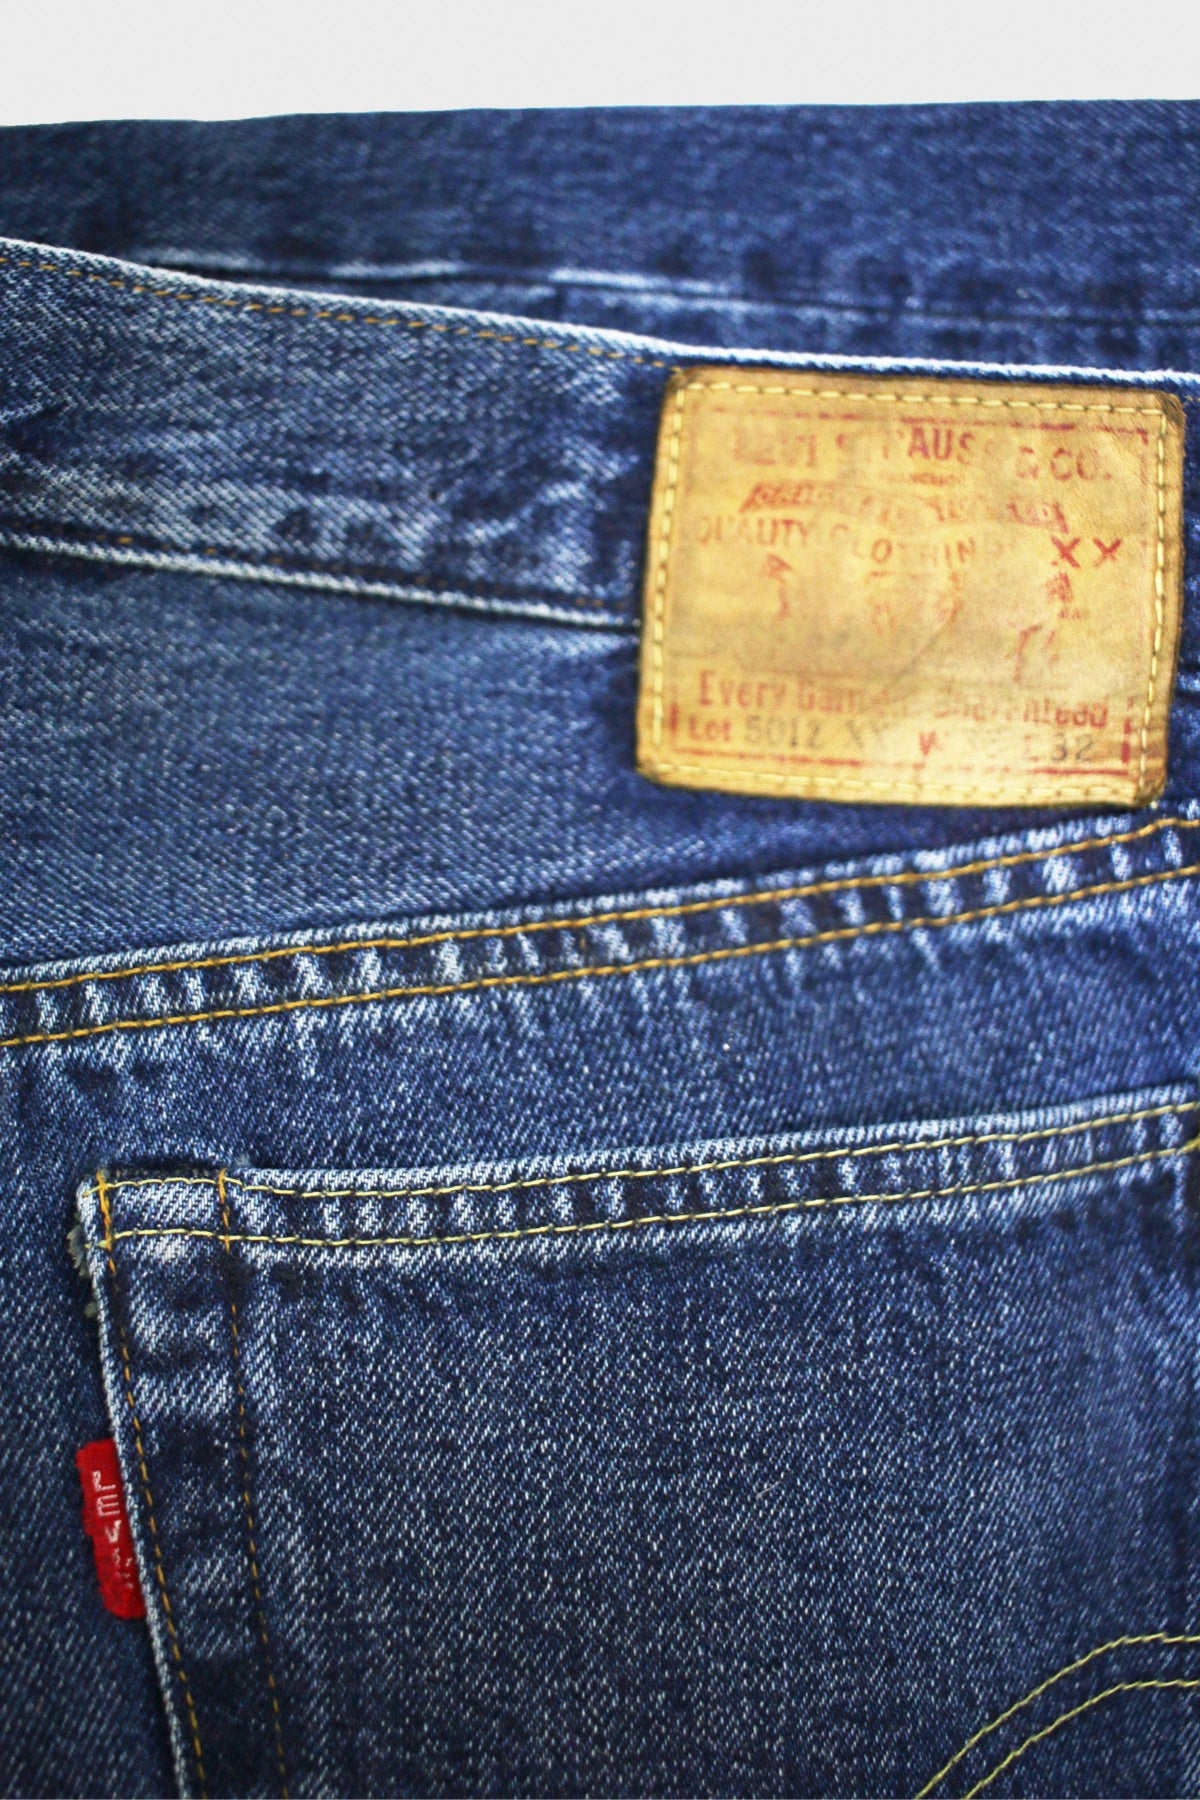 Levi's Vintage Clothing - 1954 501 Jeans - Still Breath - Canoe Club